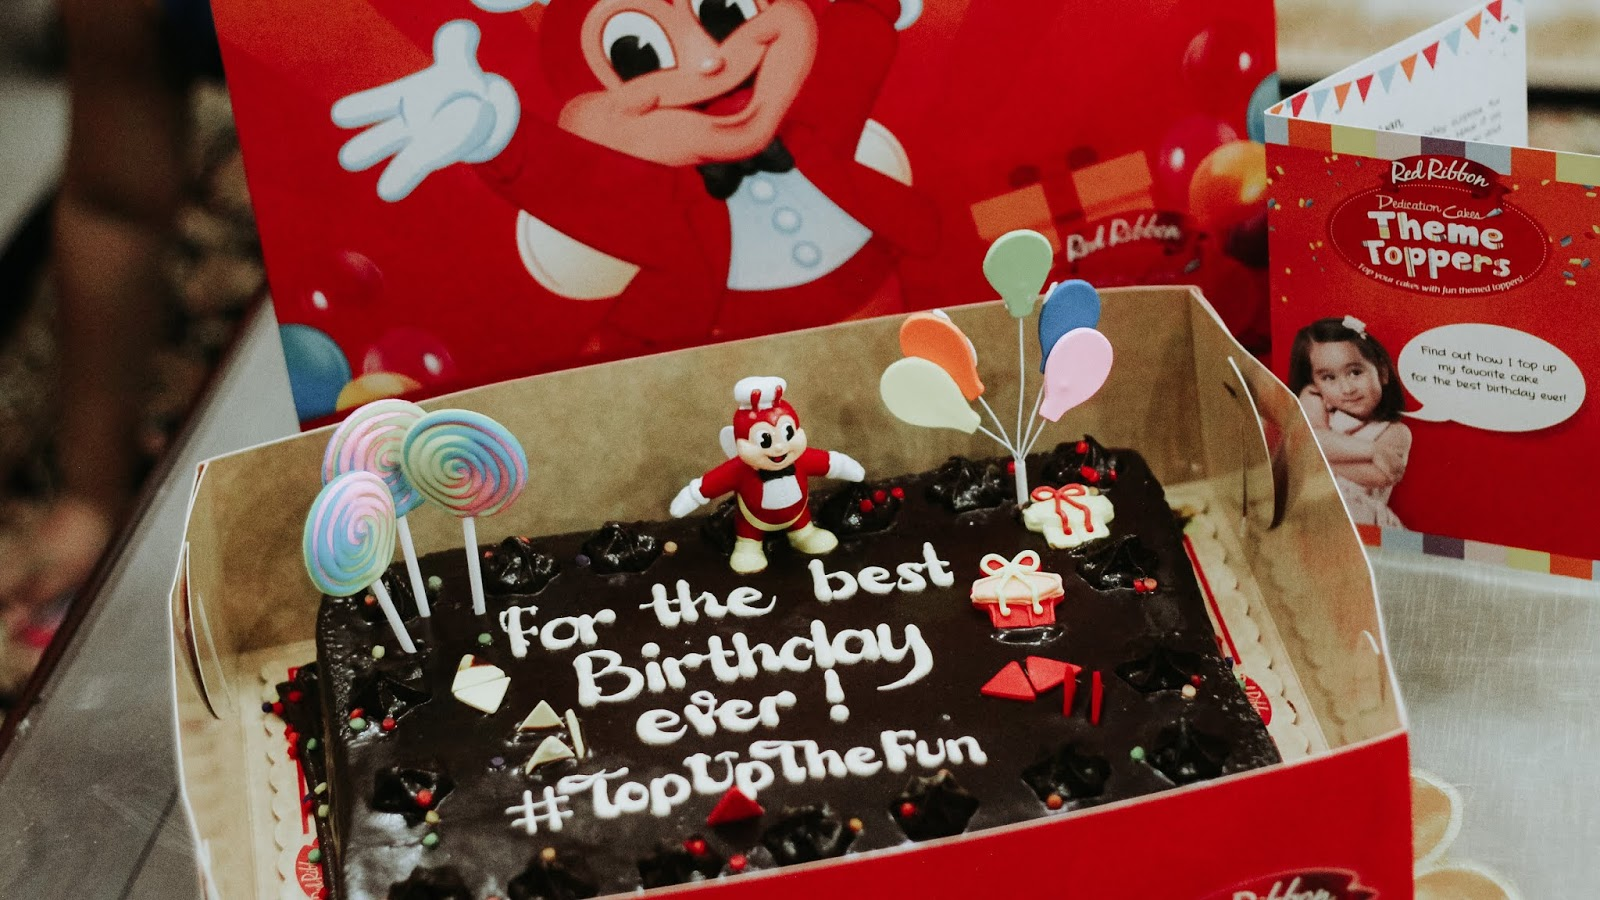 Top Up The Fun With The Red Ribbon Dedication Cake Theme Toppers